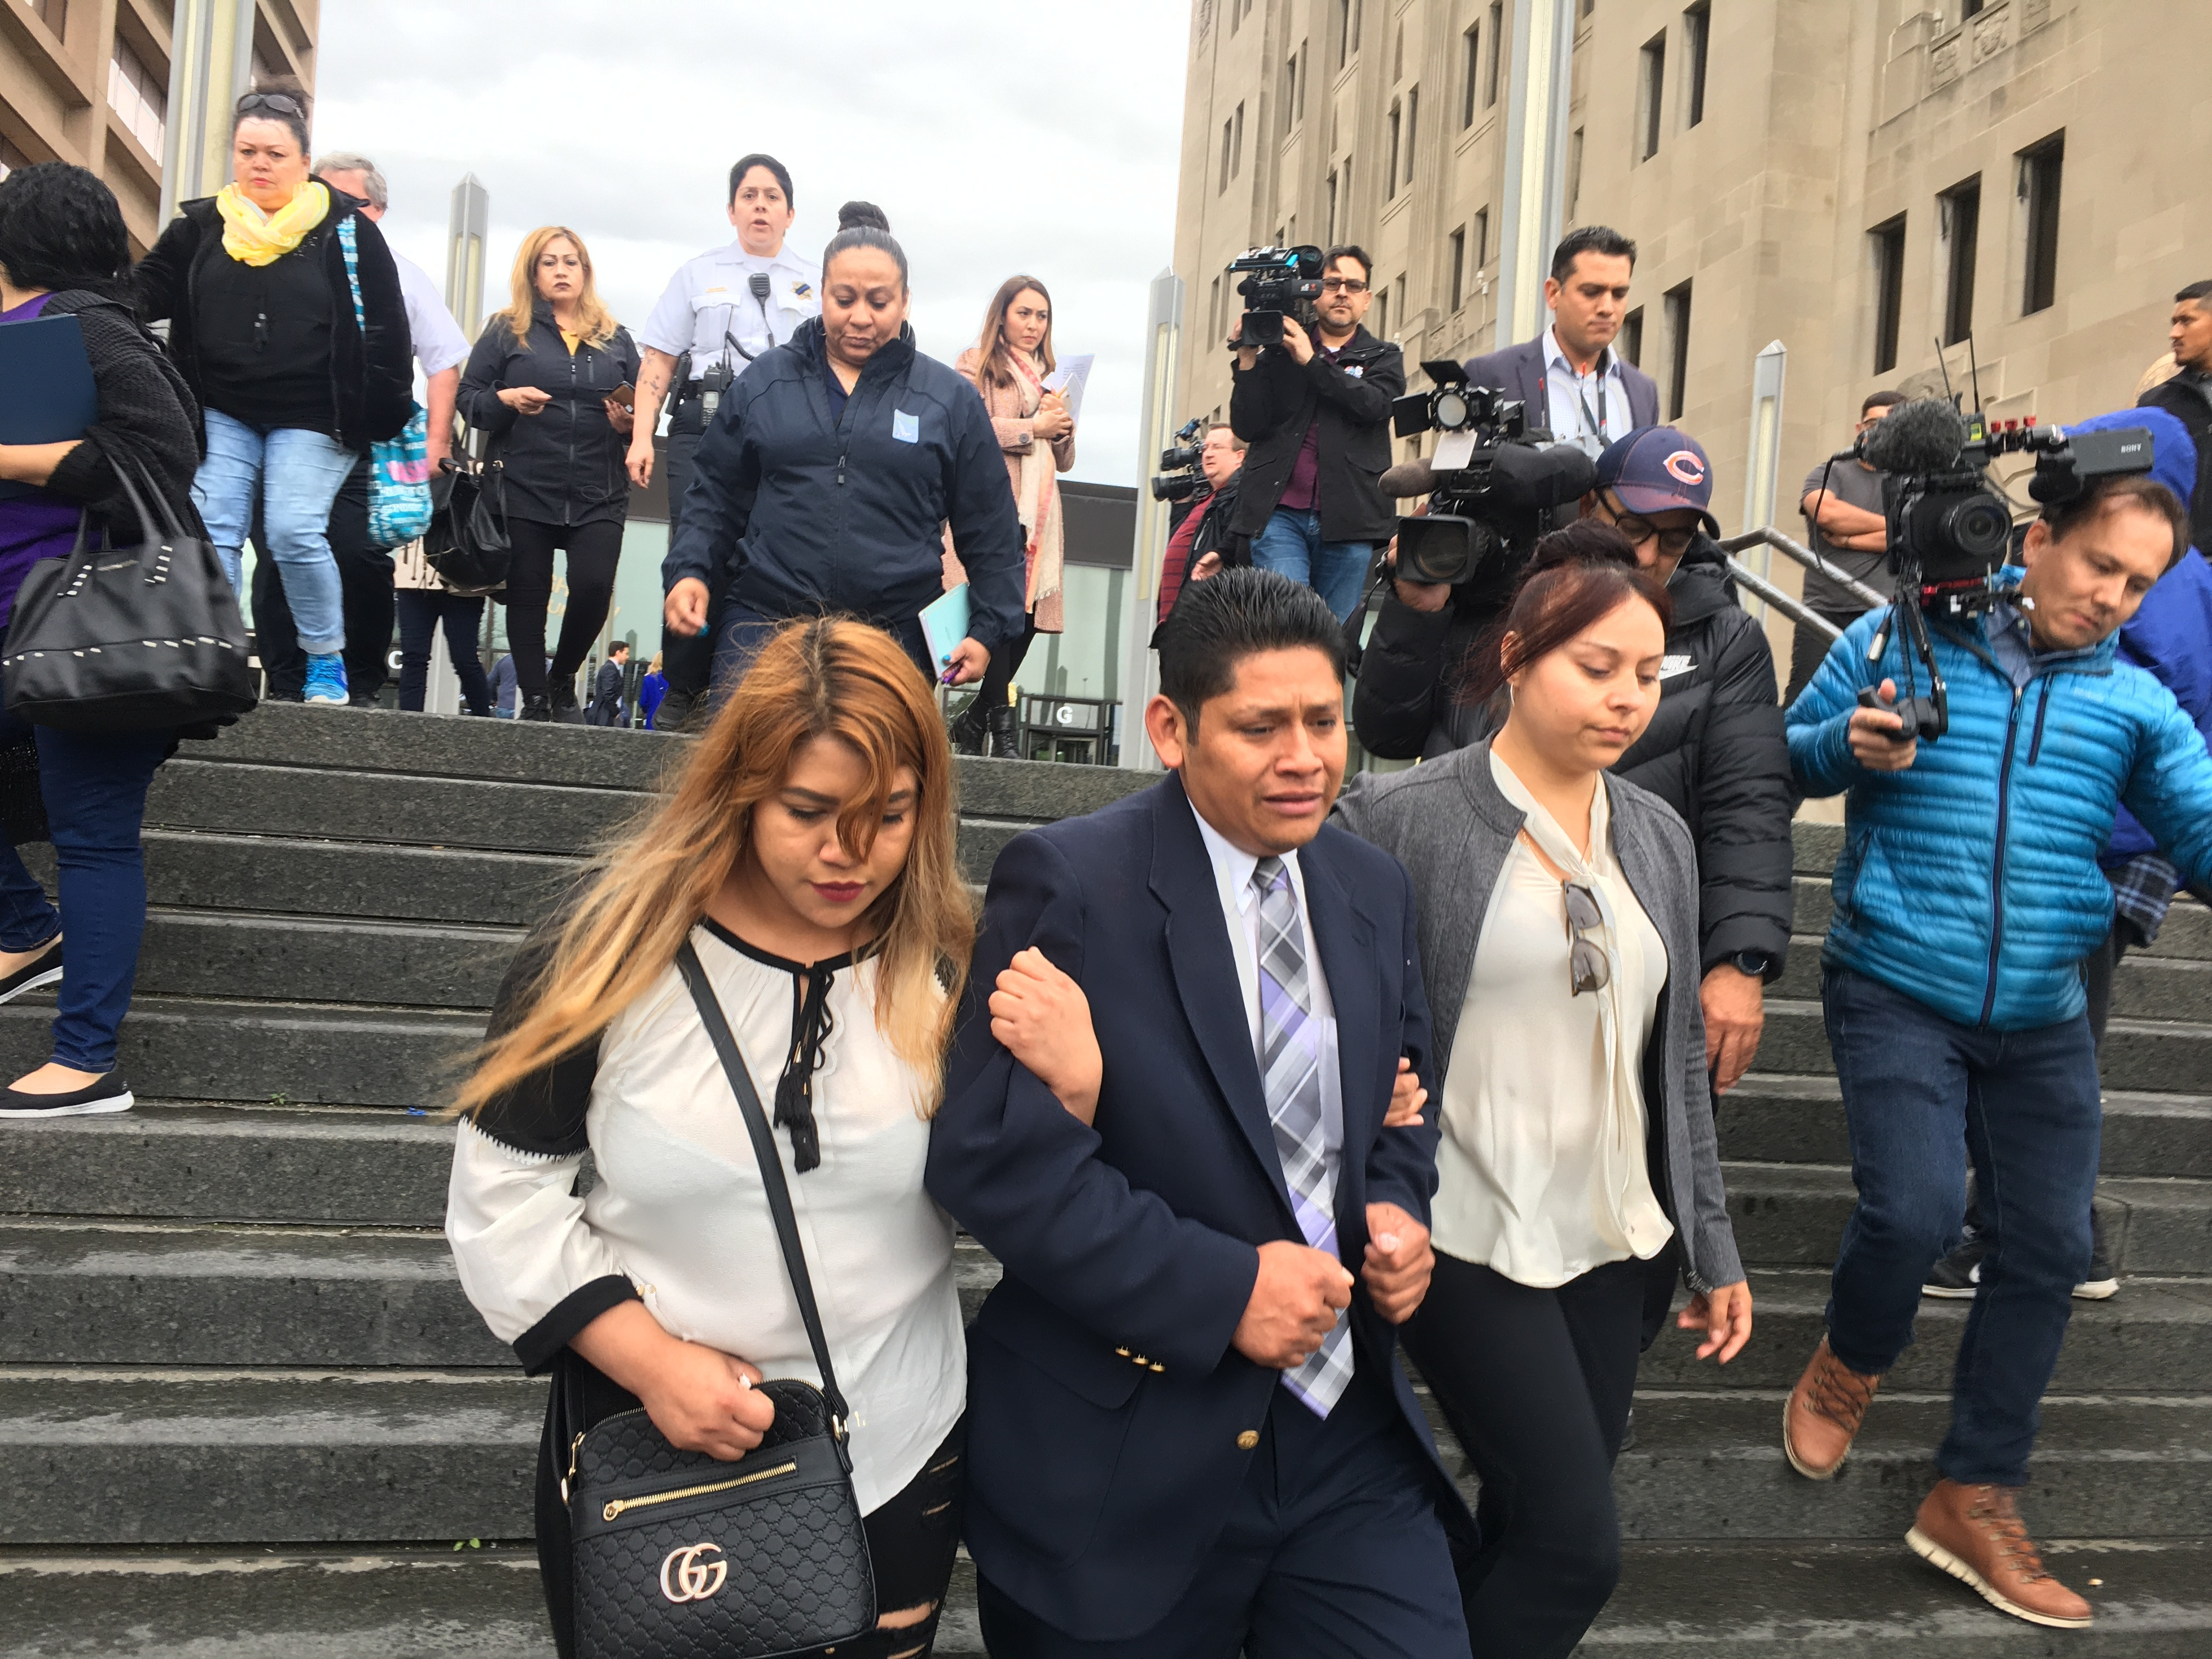 Arnulfo Ochoa (center), the father of Marlen Ochoa-Lopez, leaves the Leighton Criminal Court Building on Friday after a judge denied bail to three people in connection with Ochoa-Lopez's death.